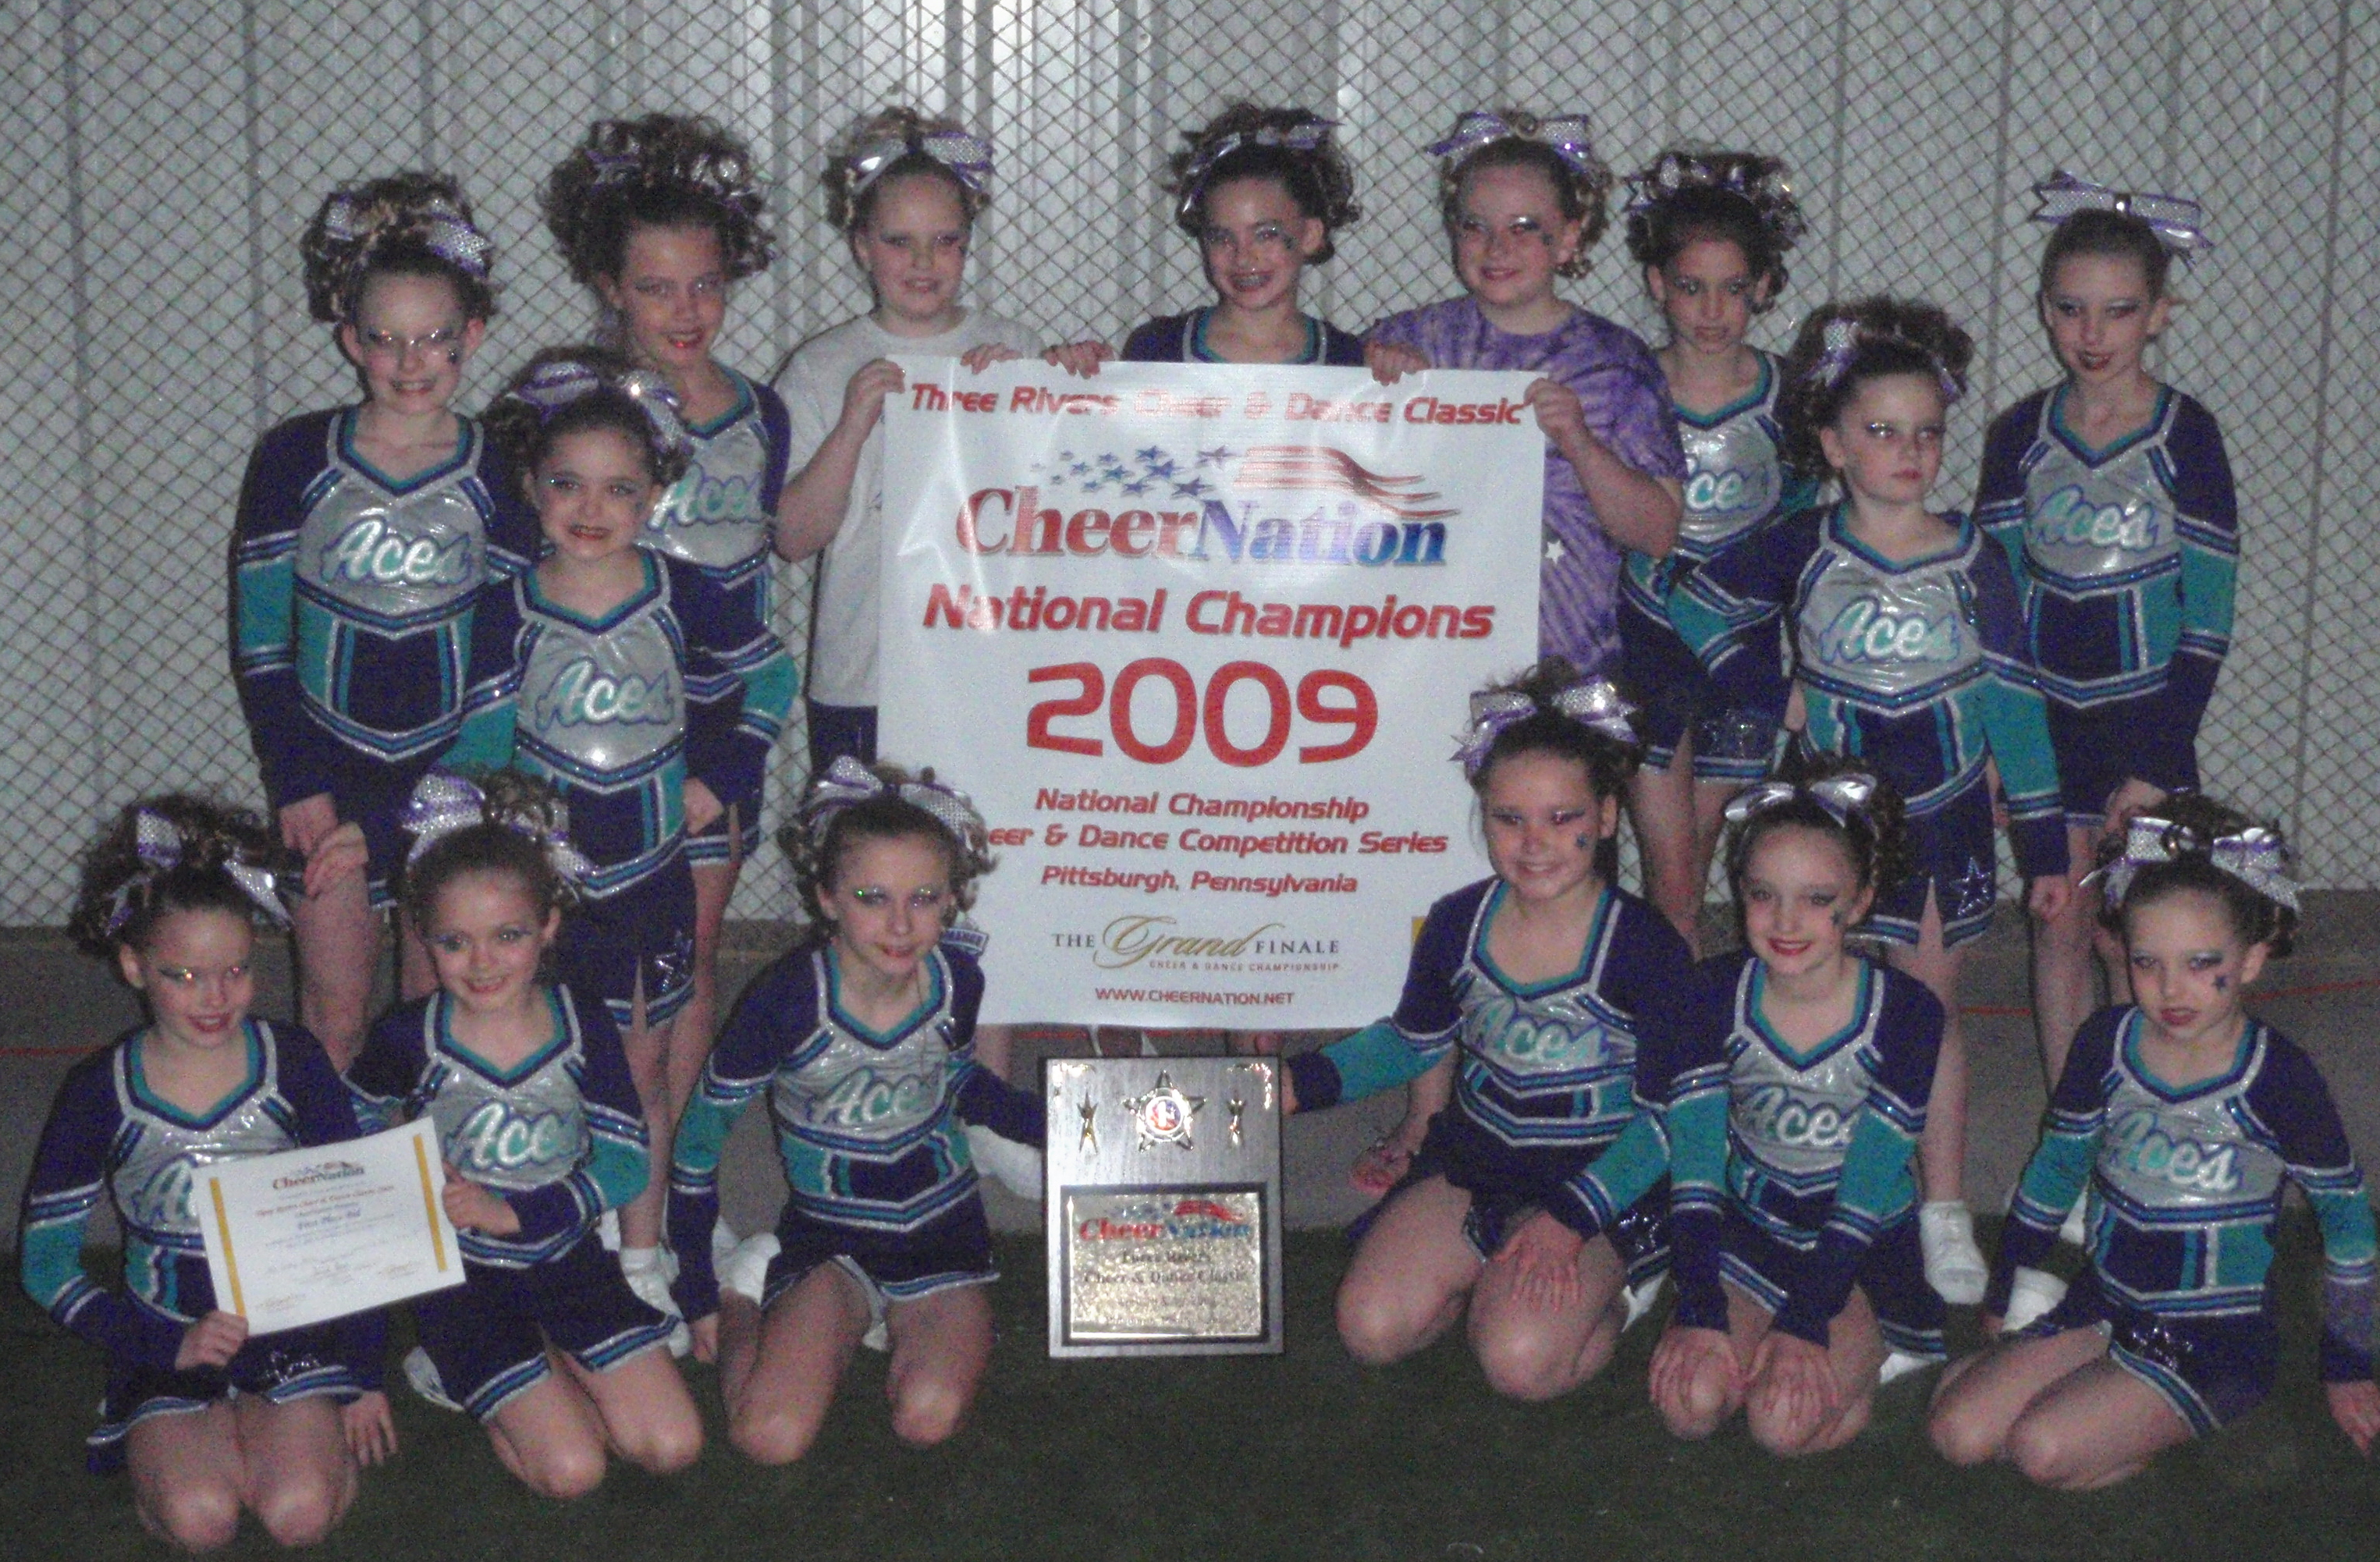 youthcheernation.JPG